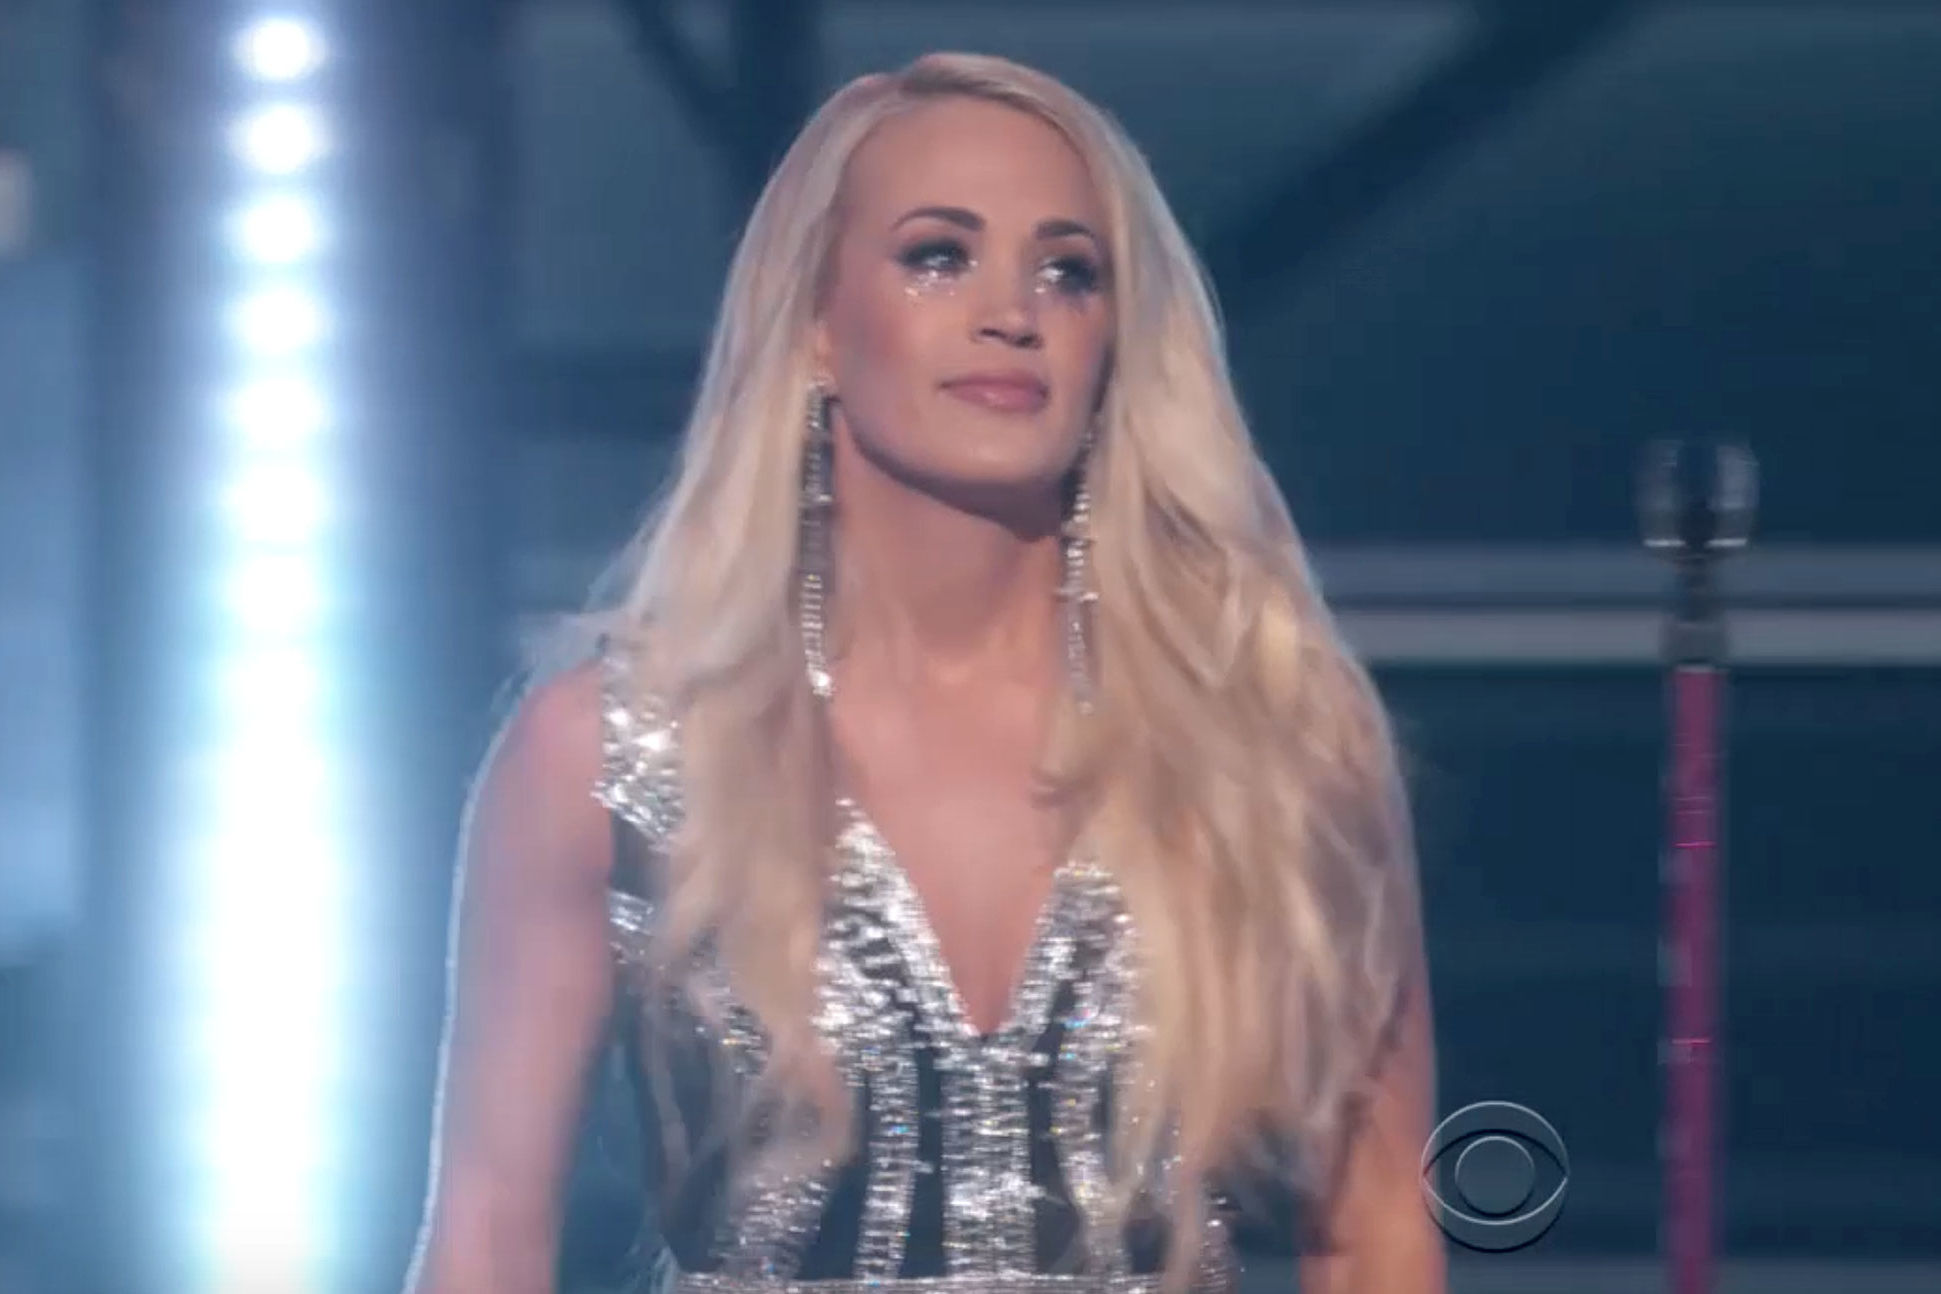 Carrie Underwood Tears Up During 'Cry Pretty' at ACMs in Emotional First Performance Since Injuring Face